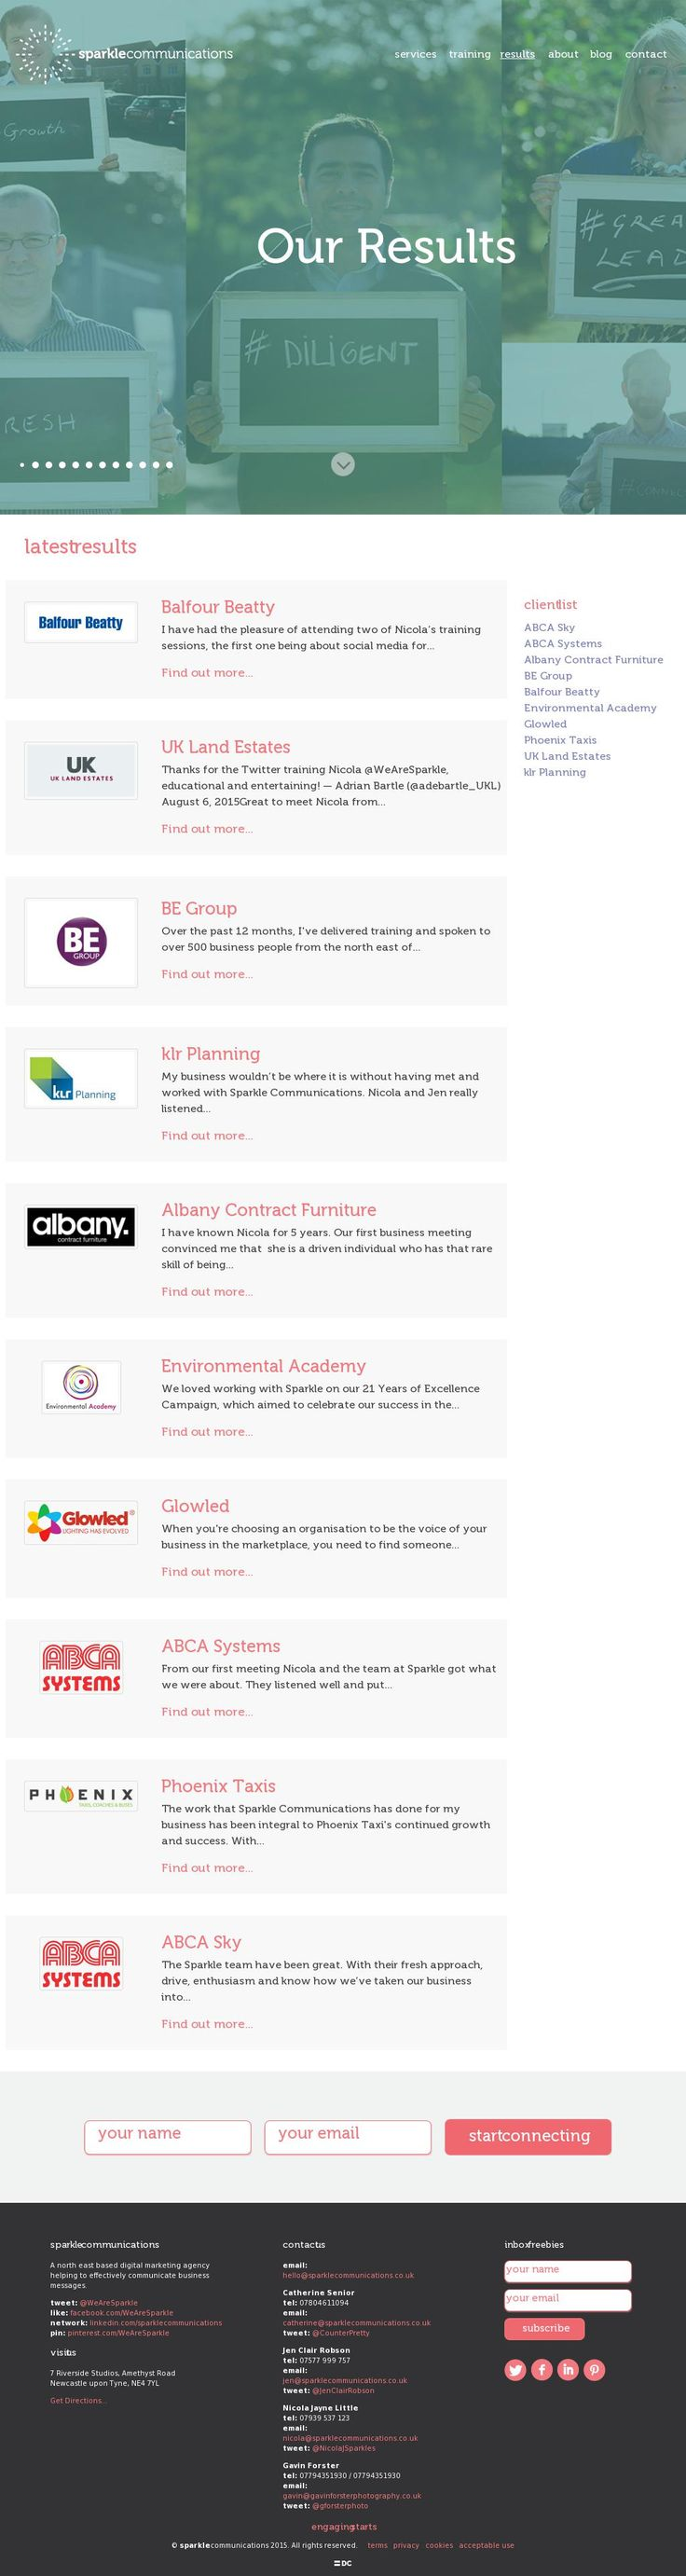 Our client testimonials from our website http://www.sparklecommunications.co.uk/results/. Click through to read more.